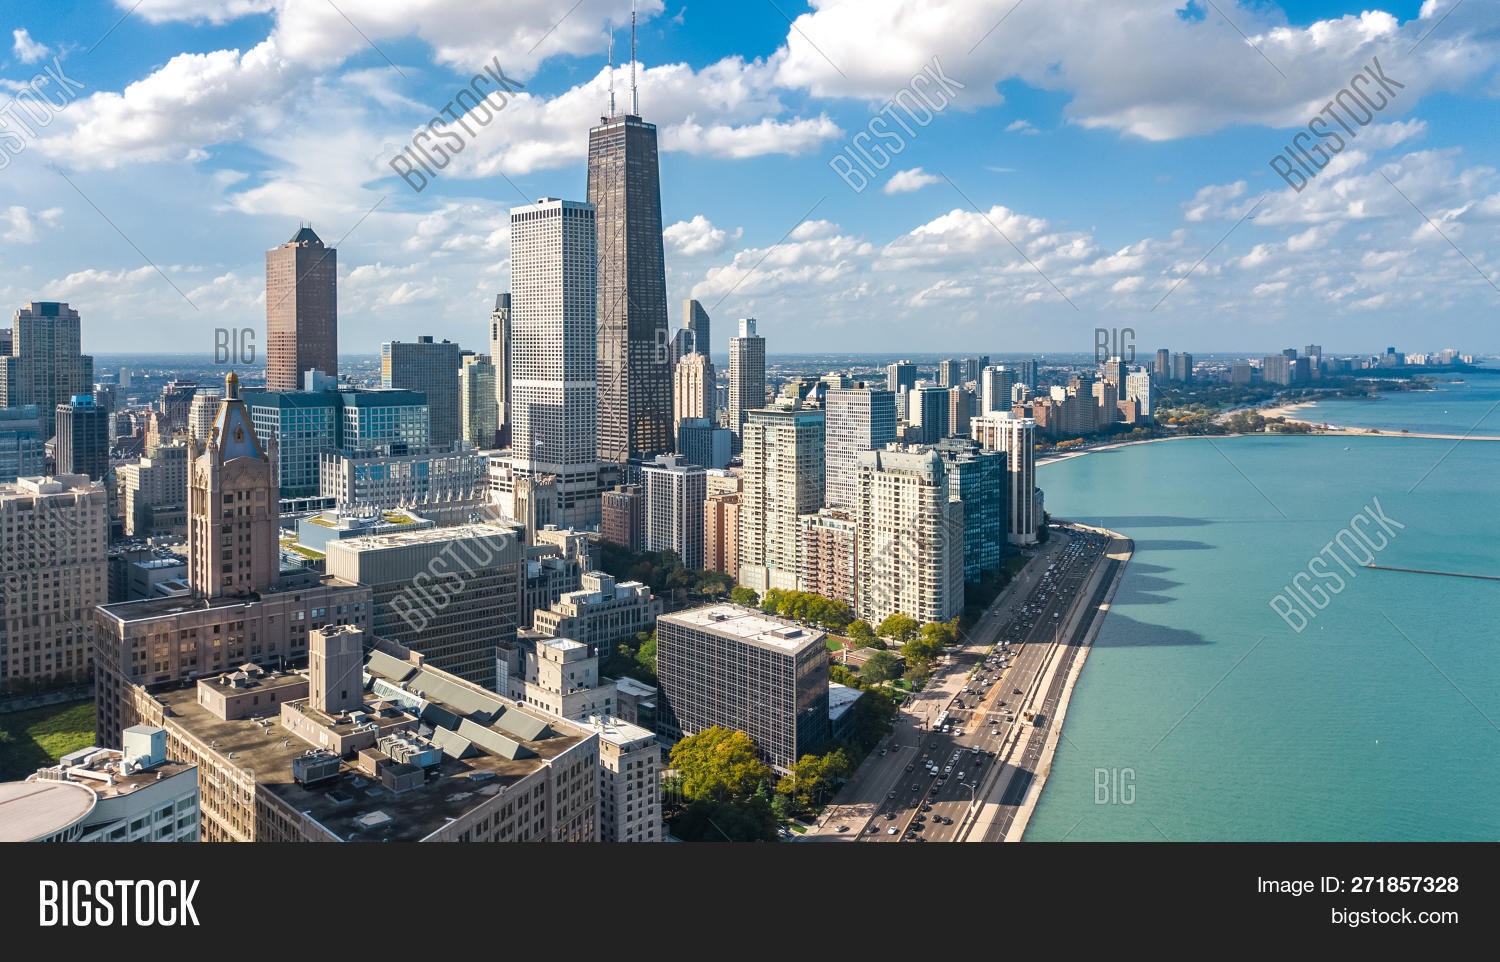 Chicago Skyline Aerial Image Photo Free Trial Bigstock